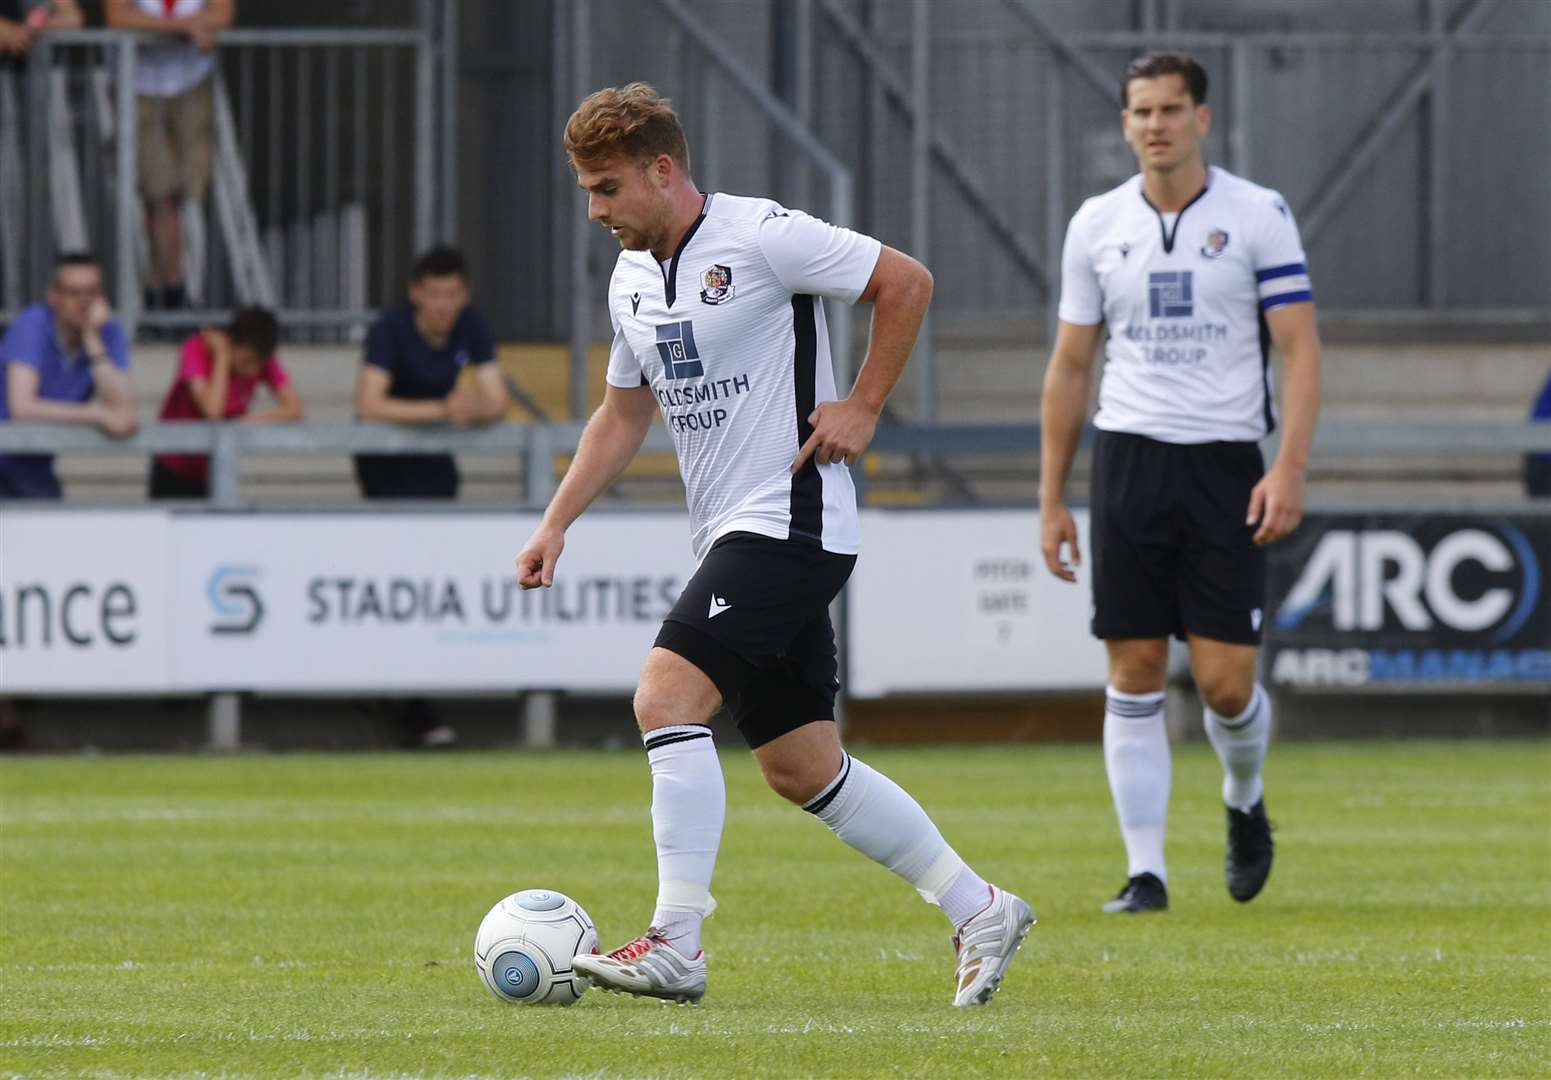 Sam Blackman was stretchered off playing for Dartford against Bromley Picture: Andy Jones